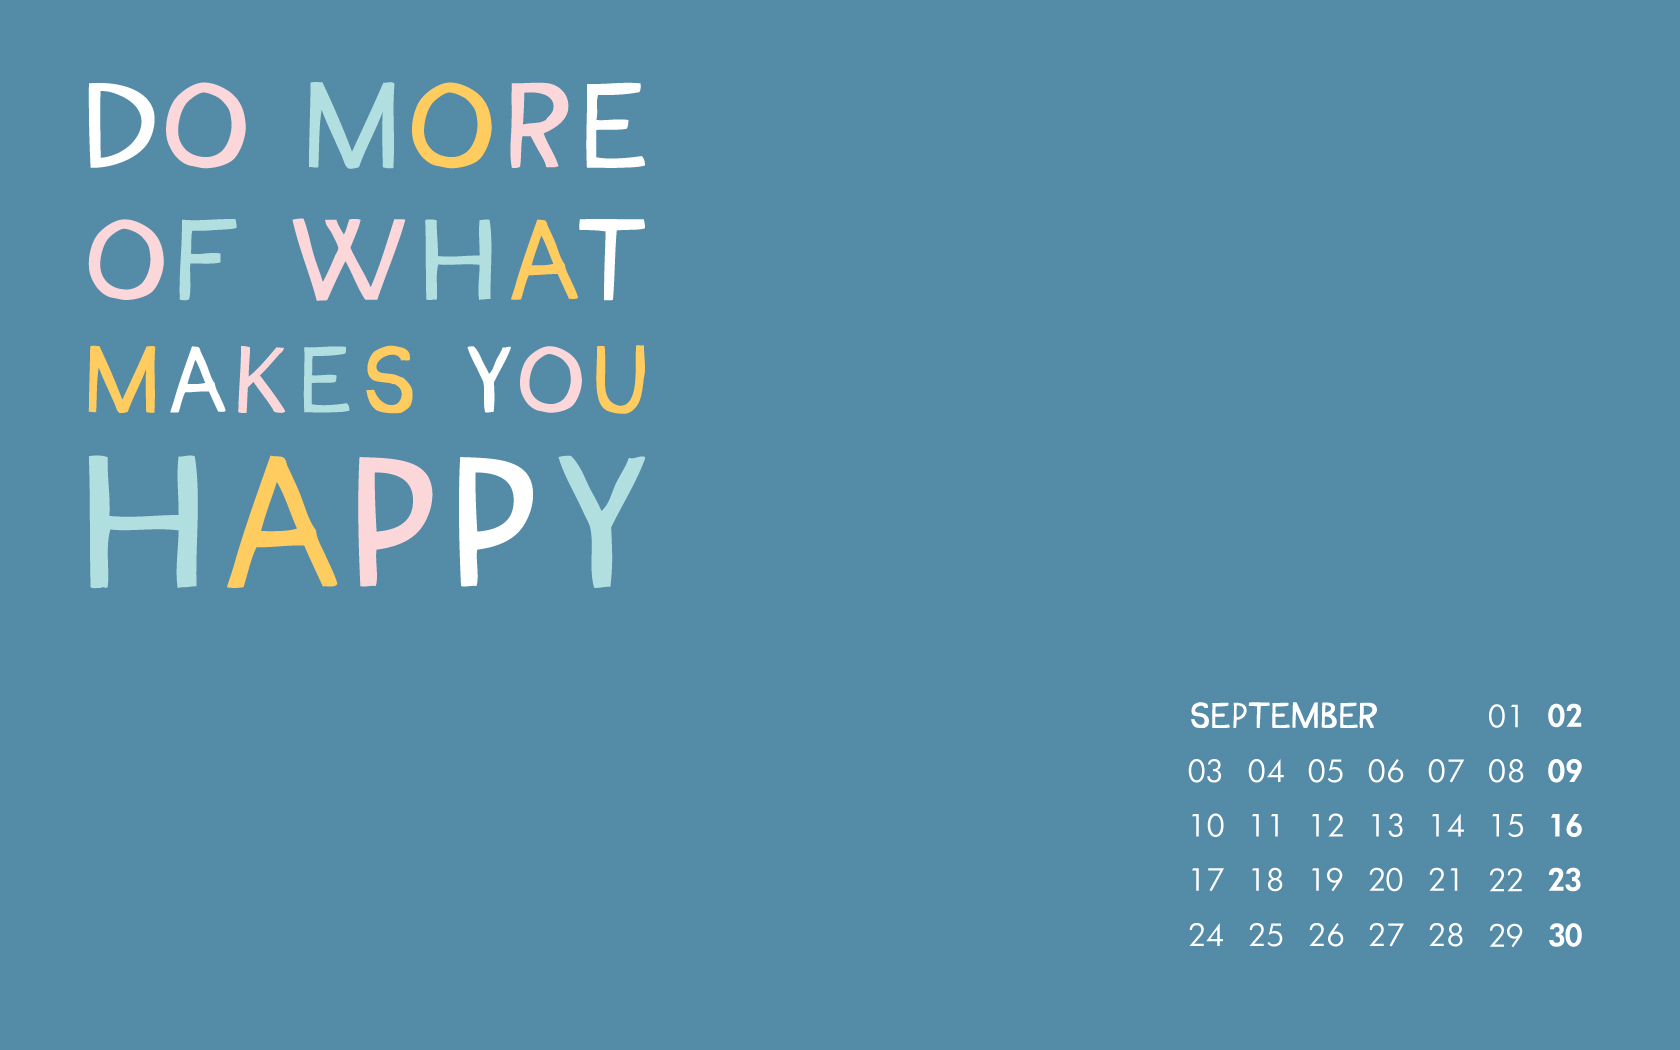 Do-more-of-what-makes-you-happy-this-September-Download-our-free-desktop-as-gentle-remind-wallpaper-wp5205880